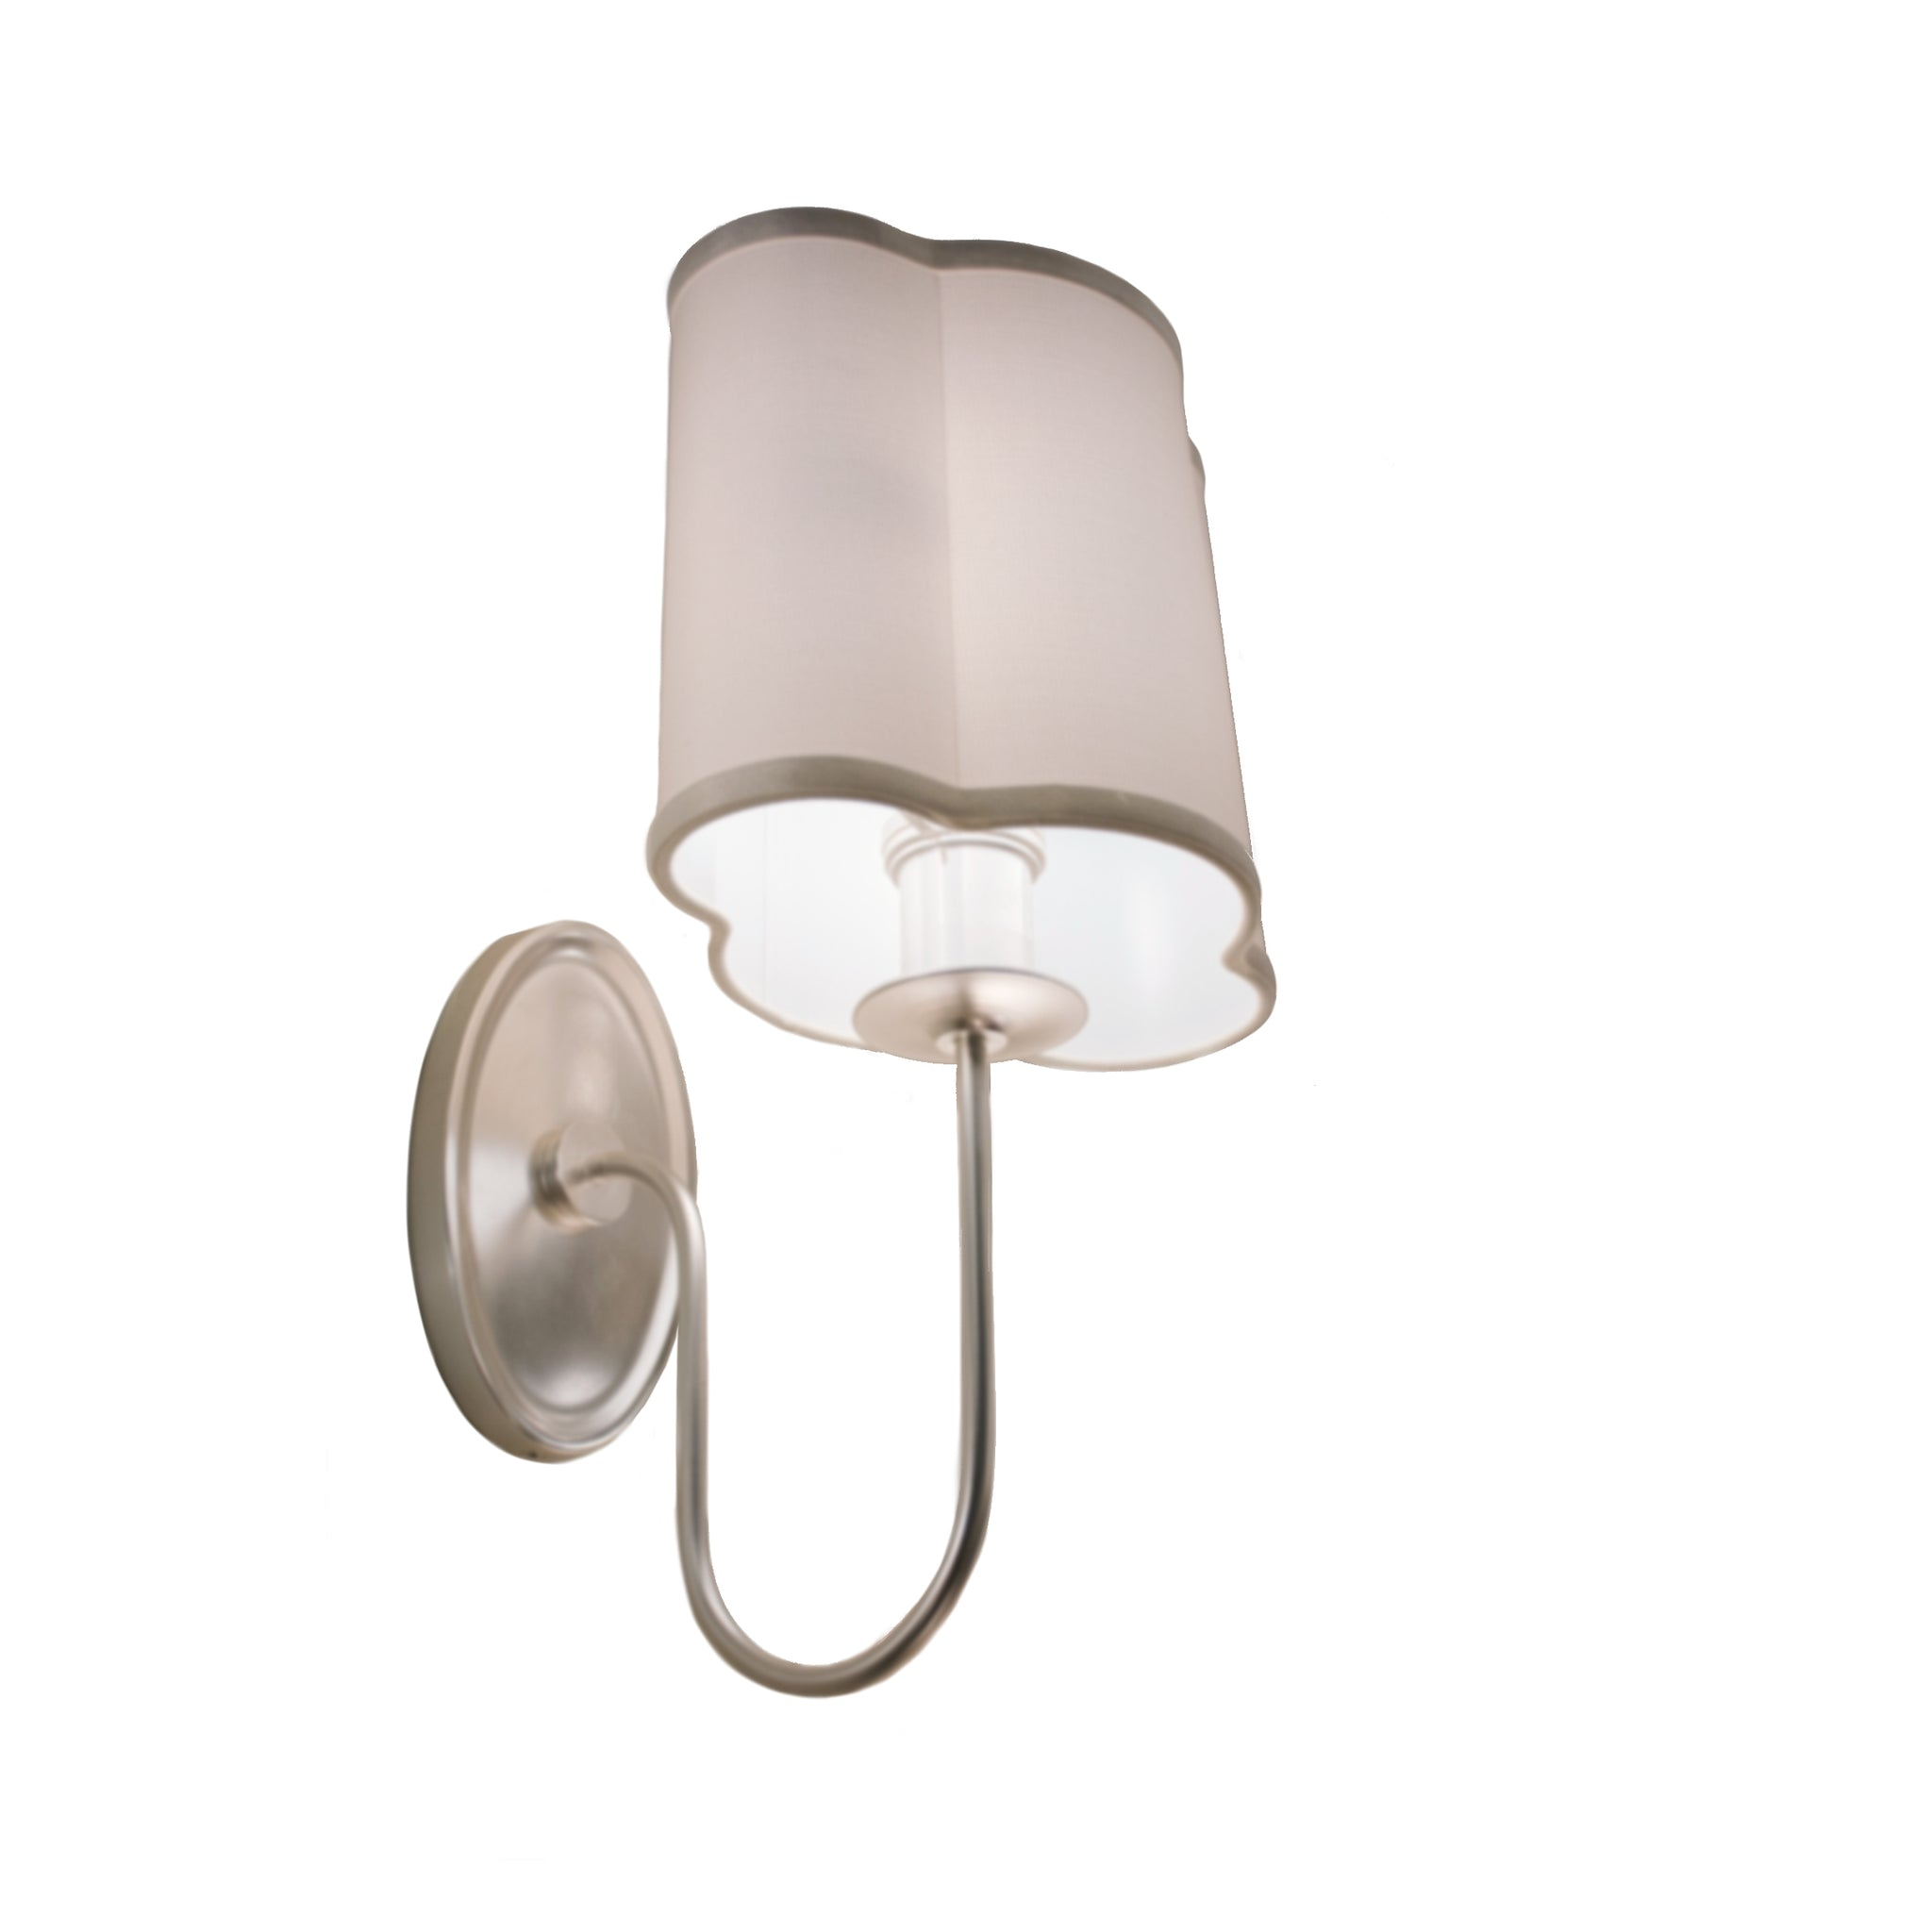 wall light productdetail armed globe uptown hover first to sconce black htm two zoom